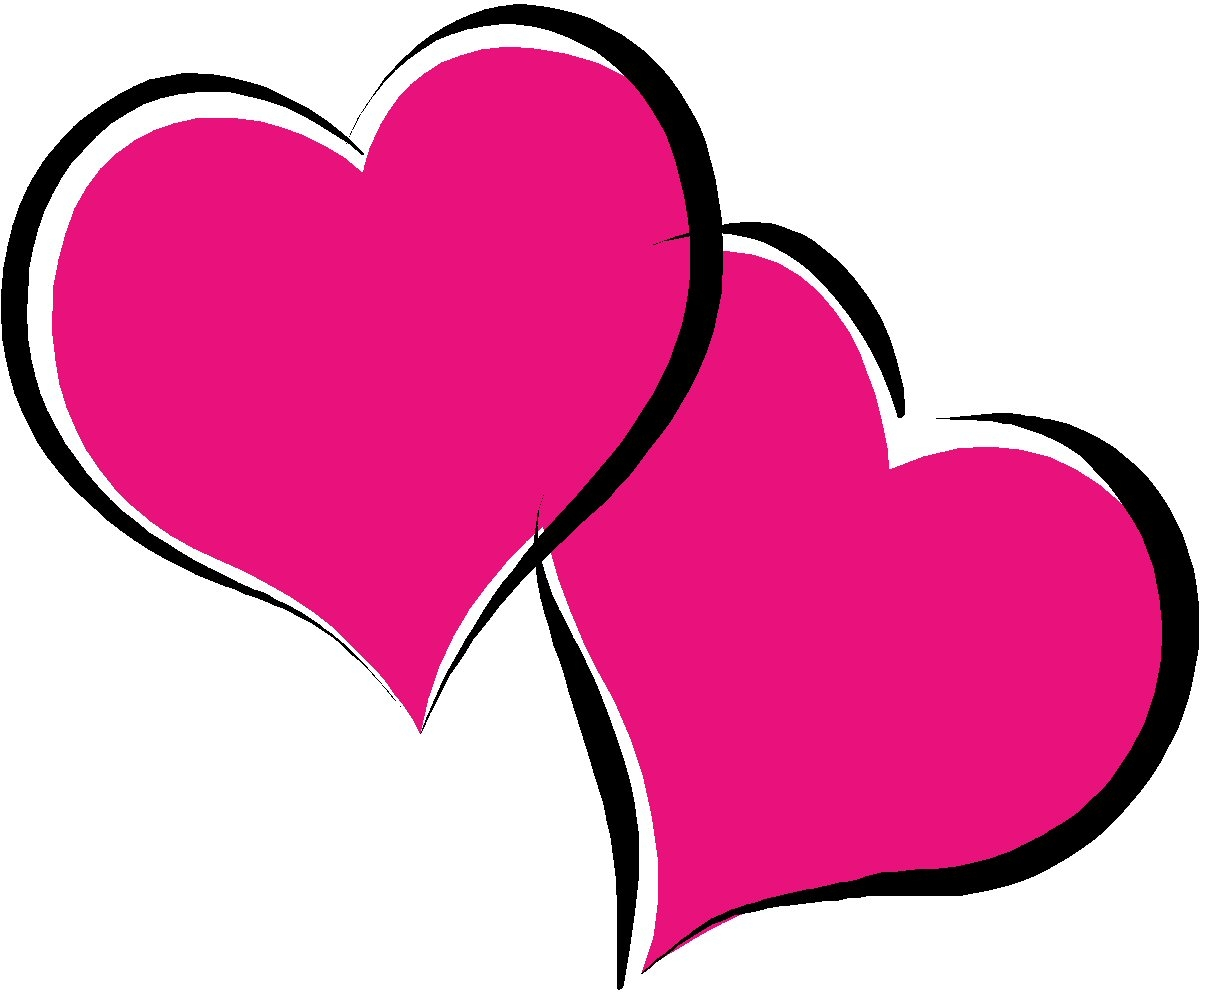 Heart Design Clipart at GetDrawings.com | Free for personal use ...